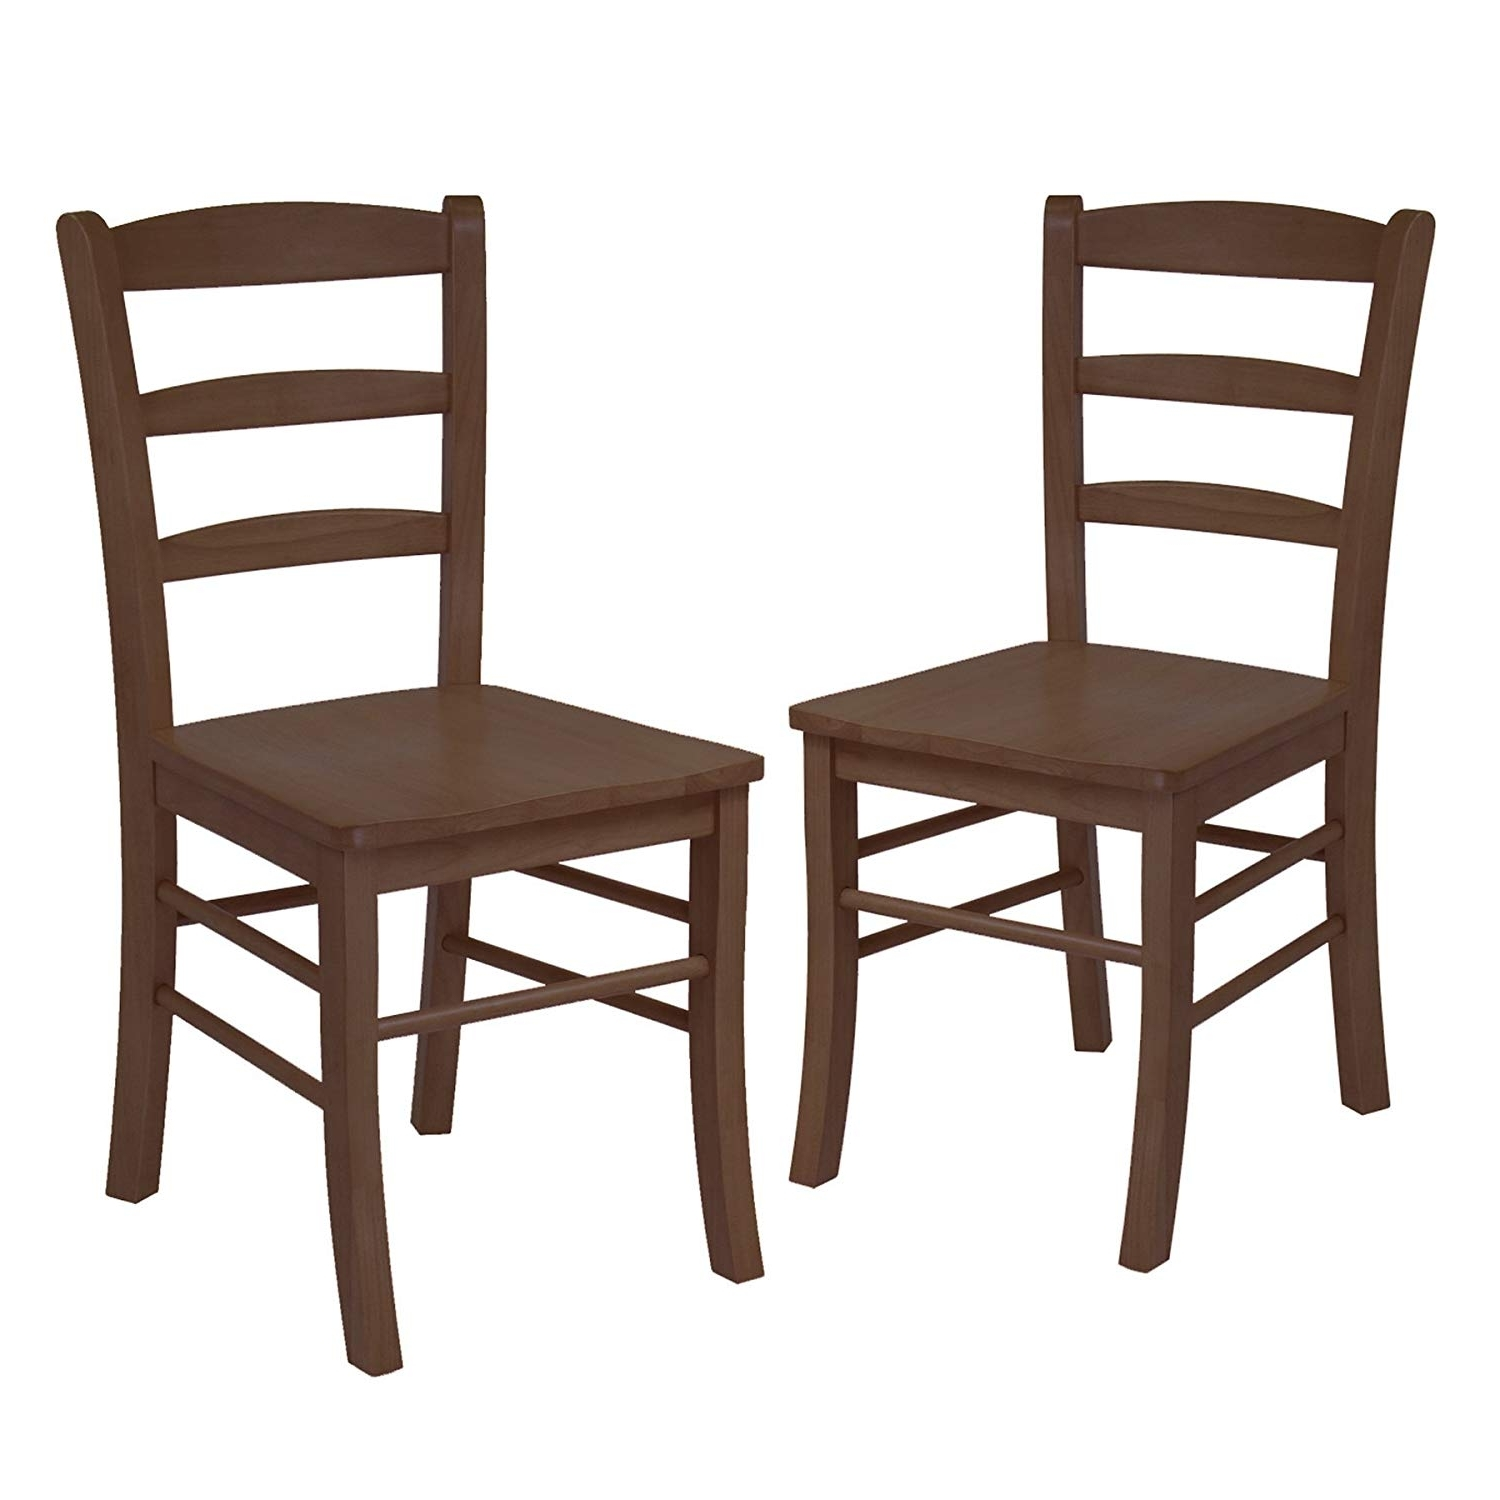 Amazon: Winsome Wood 34232 Benjamin Seating, Natural: Kitchen Intended For Latest Wooden Dining Sets (View 2 of 25)